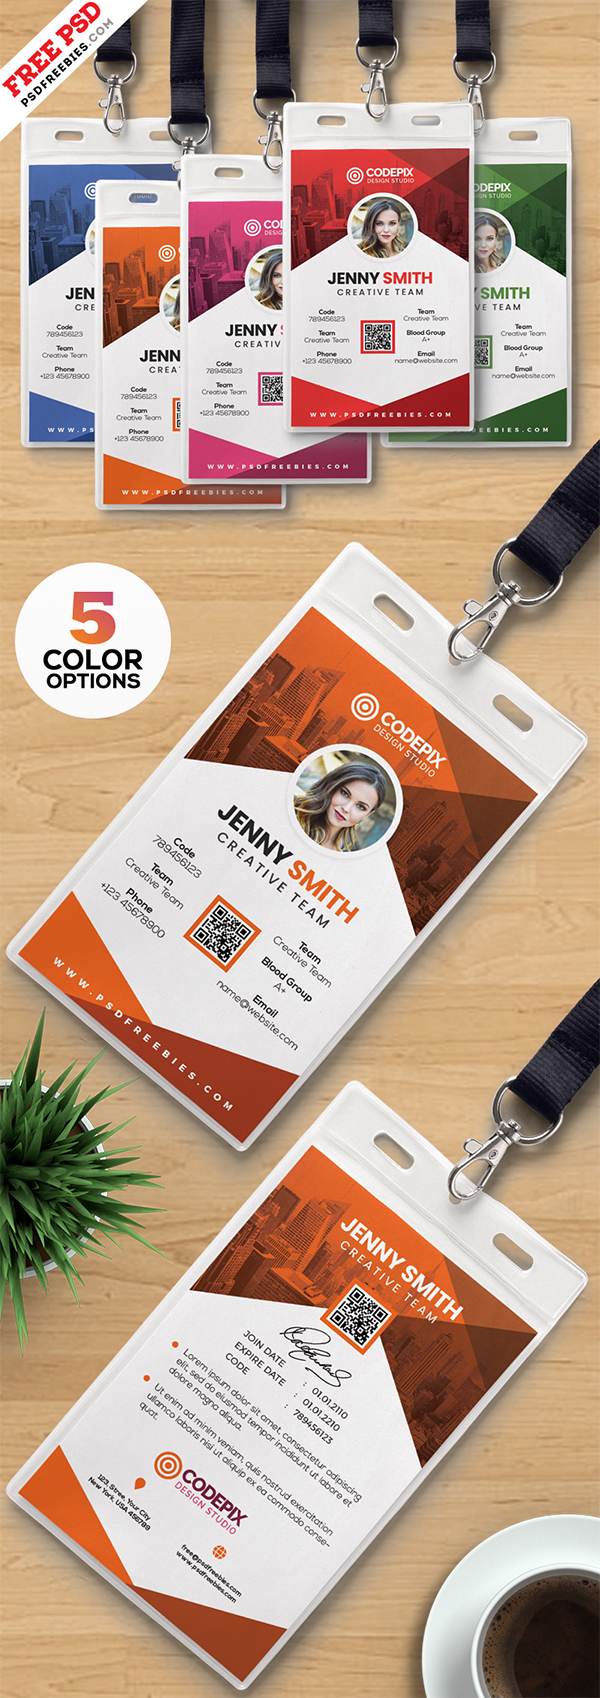 Photo Identity Card Templates PSD